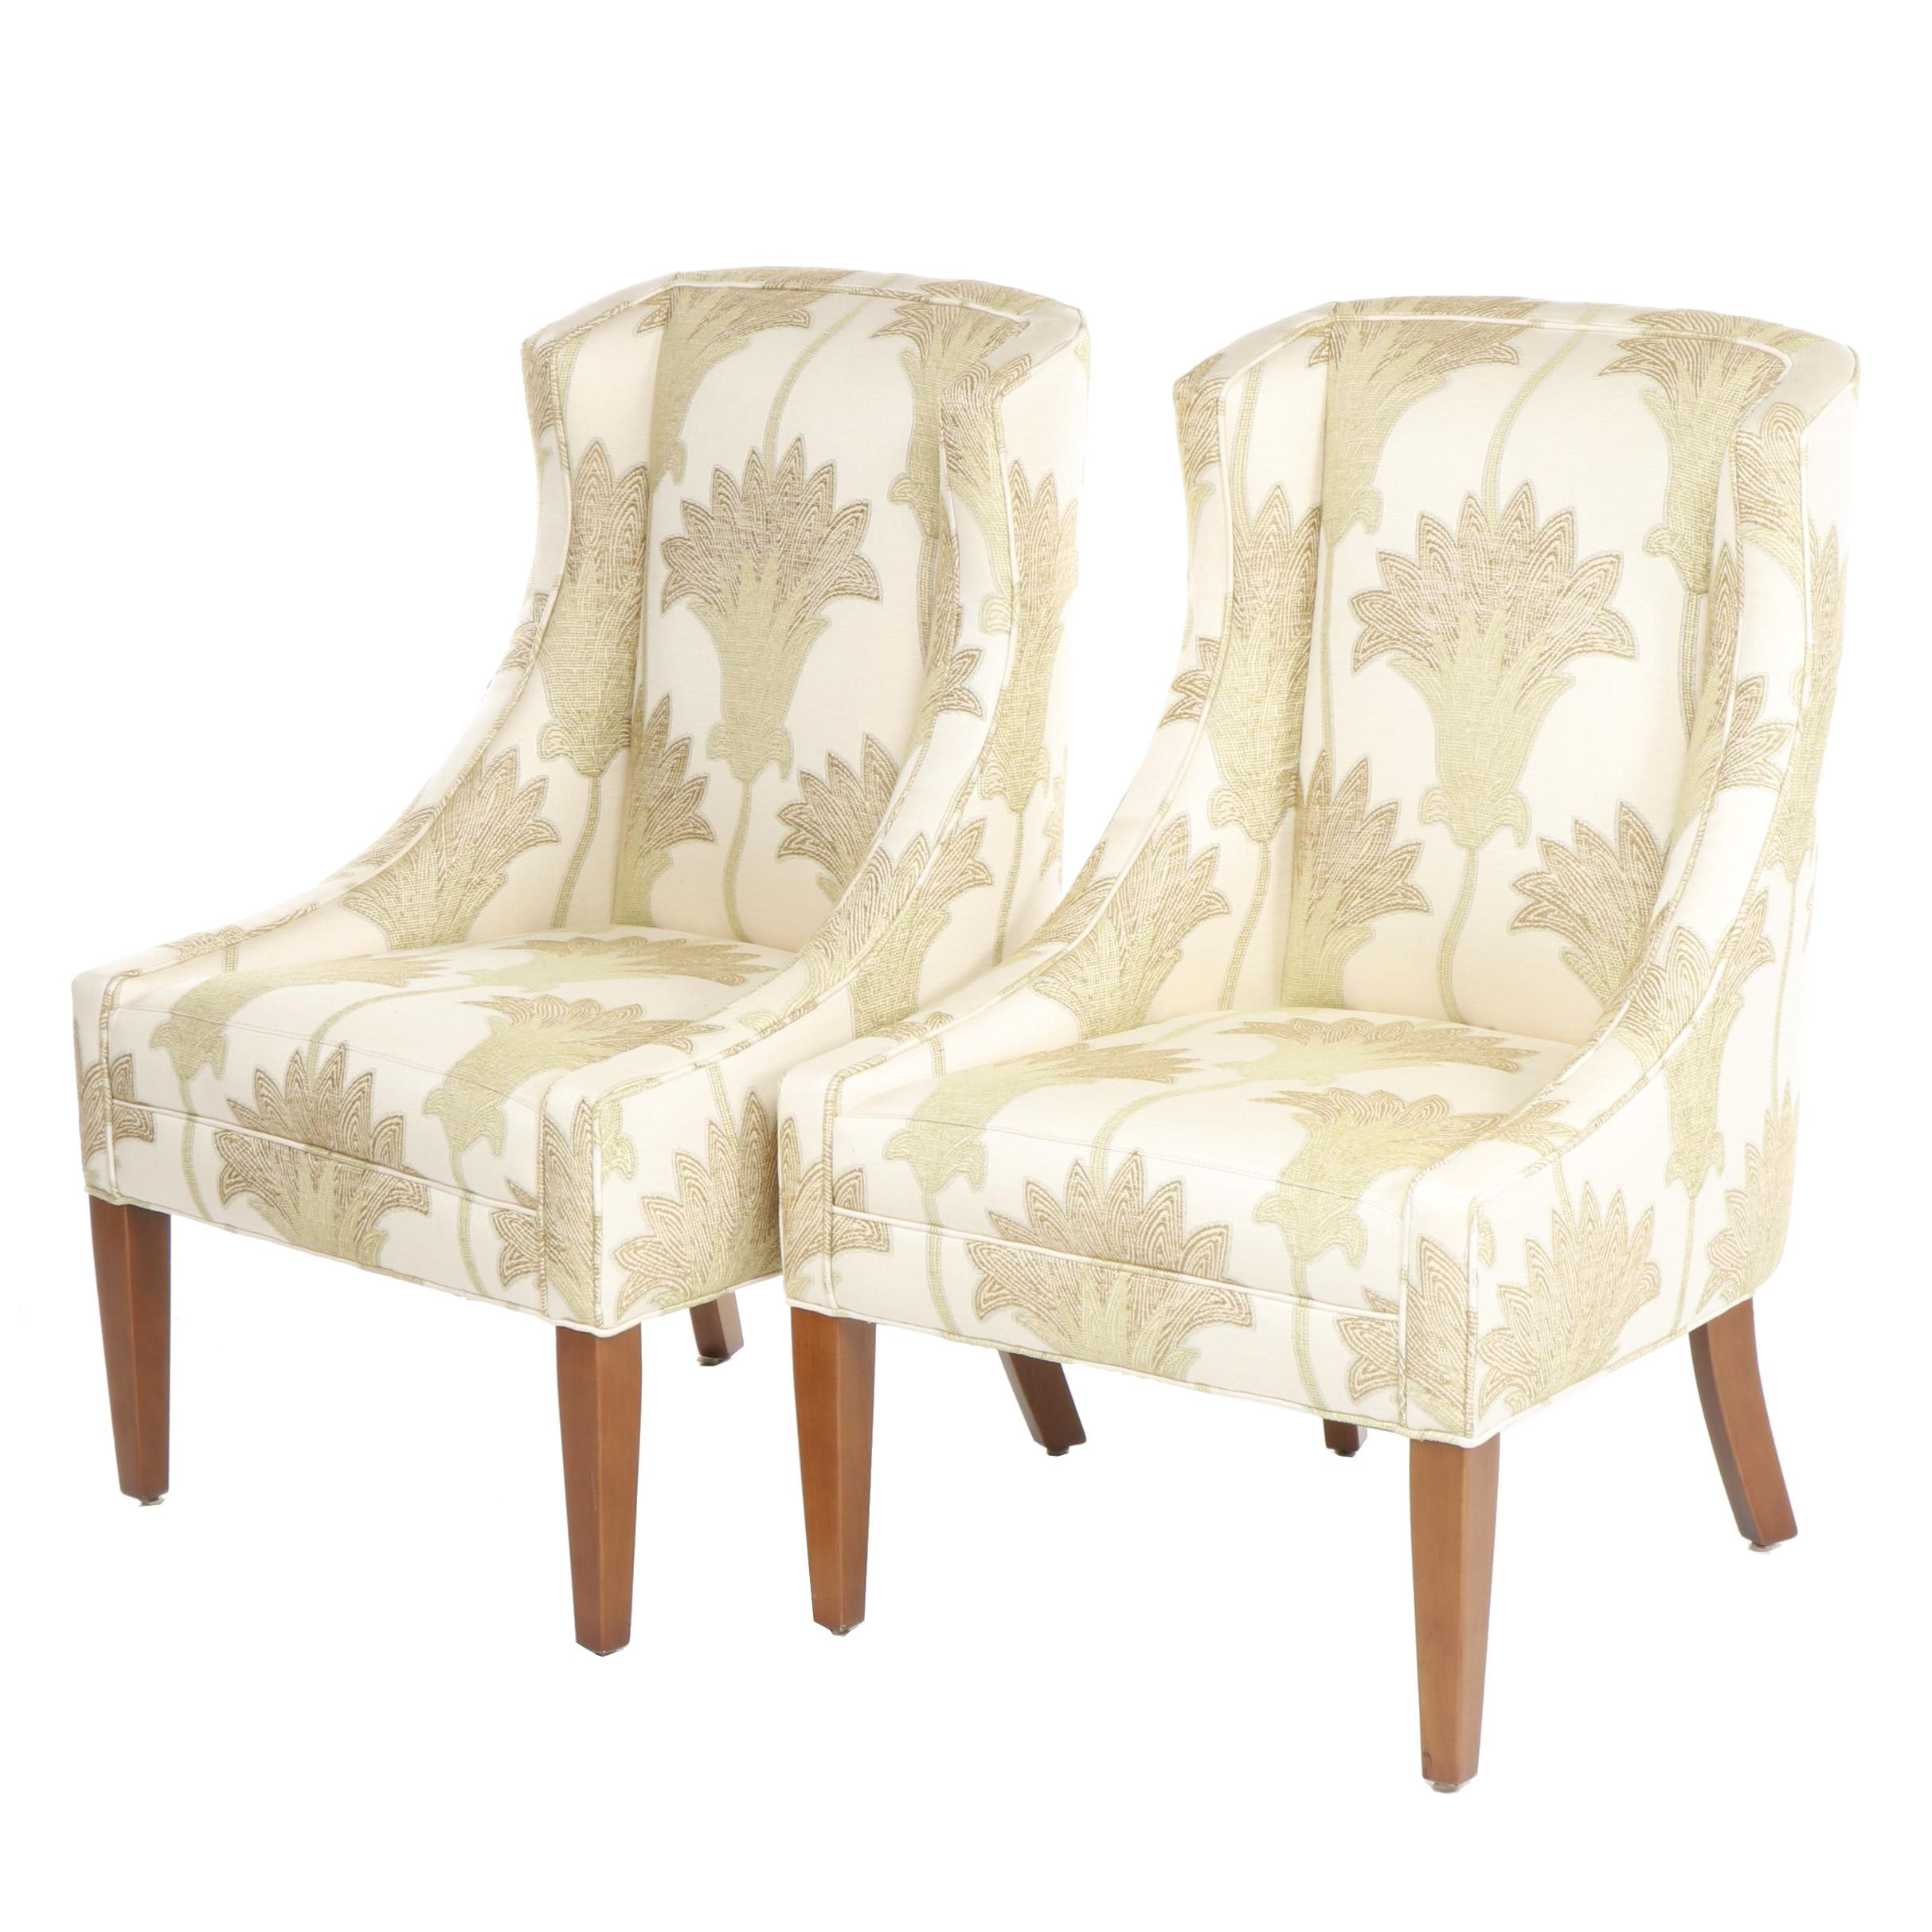 Pair of Contemporary Floral Upholstered Side Chairs